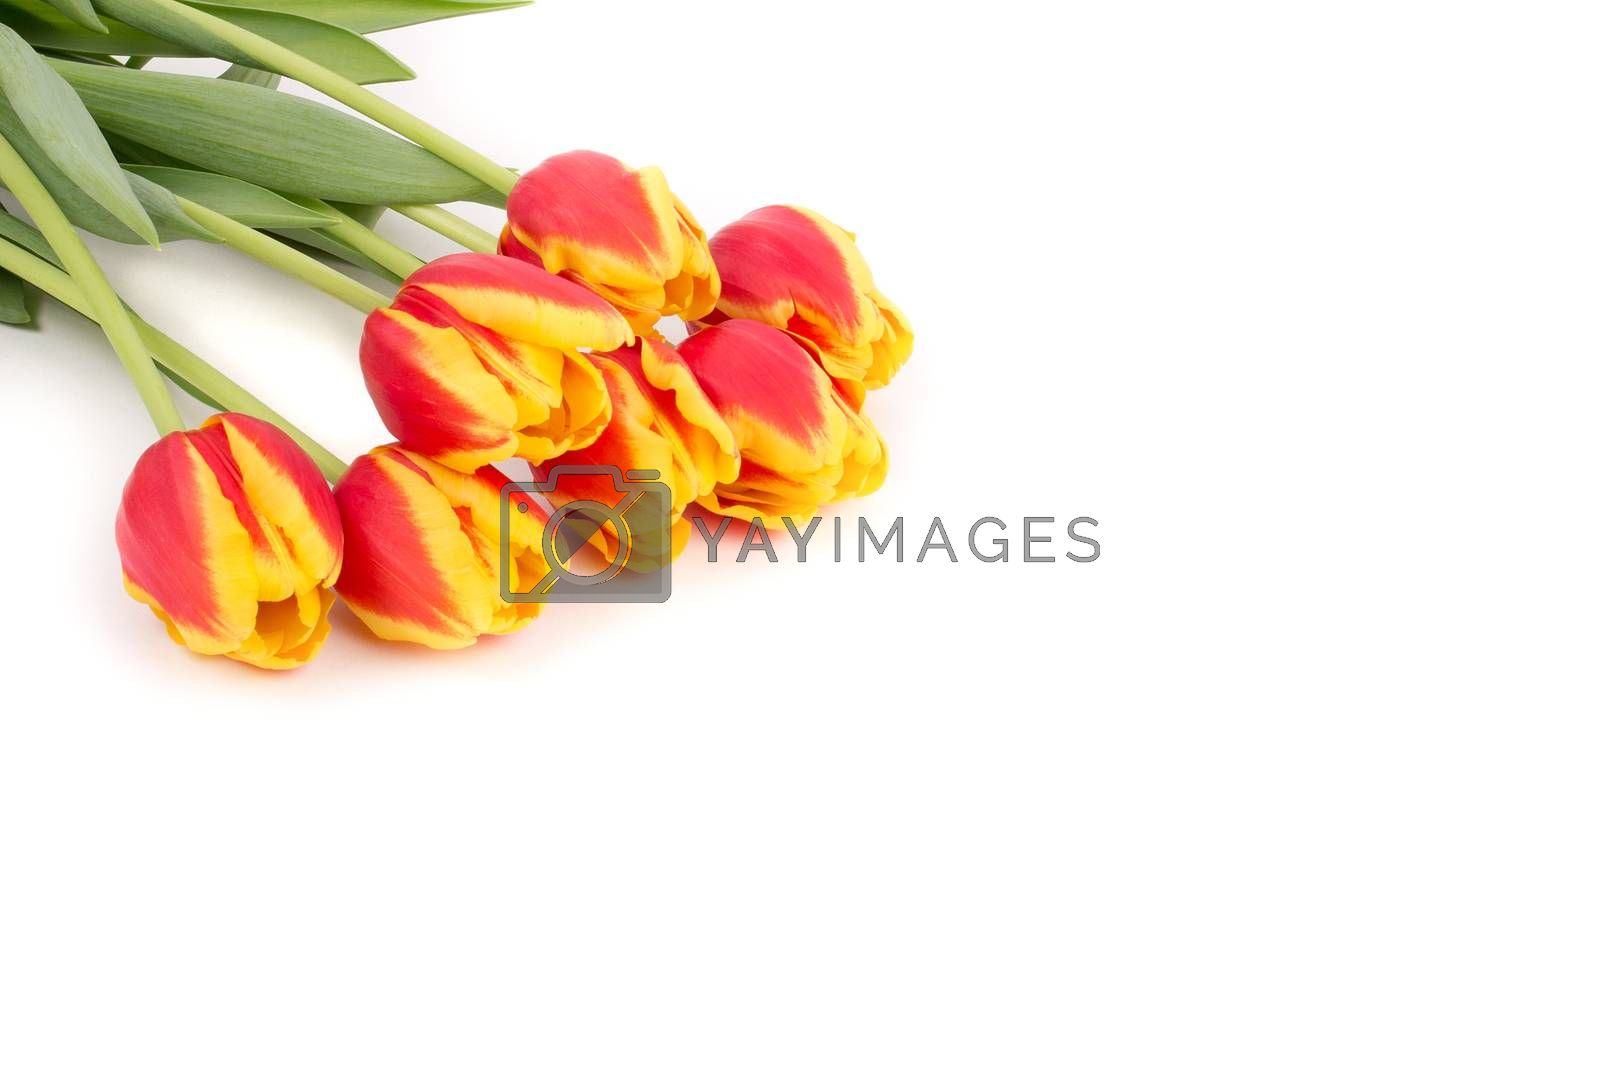 Yellow and red tulips on a white background